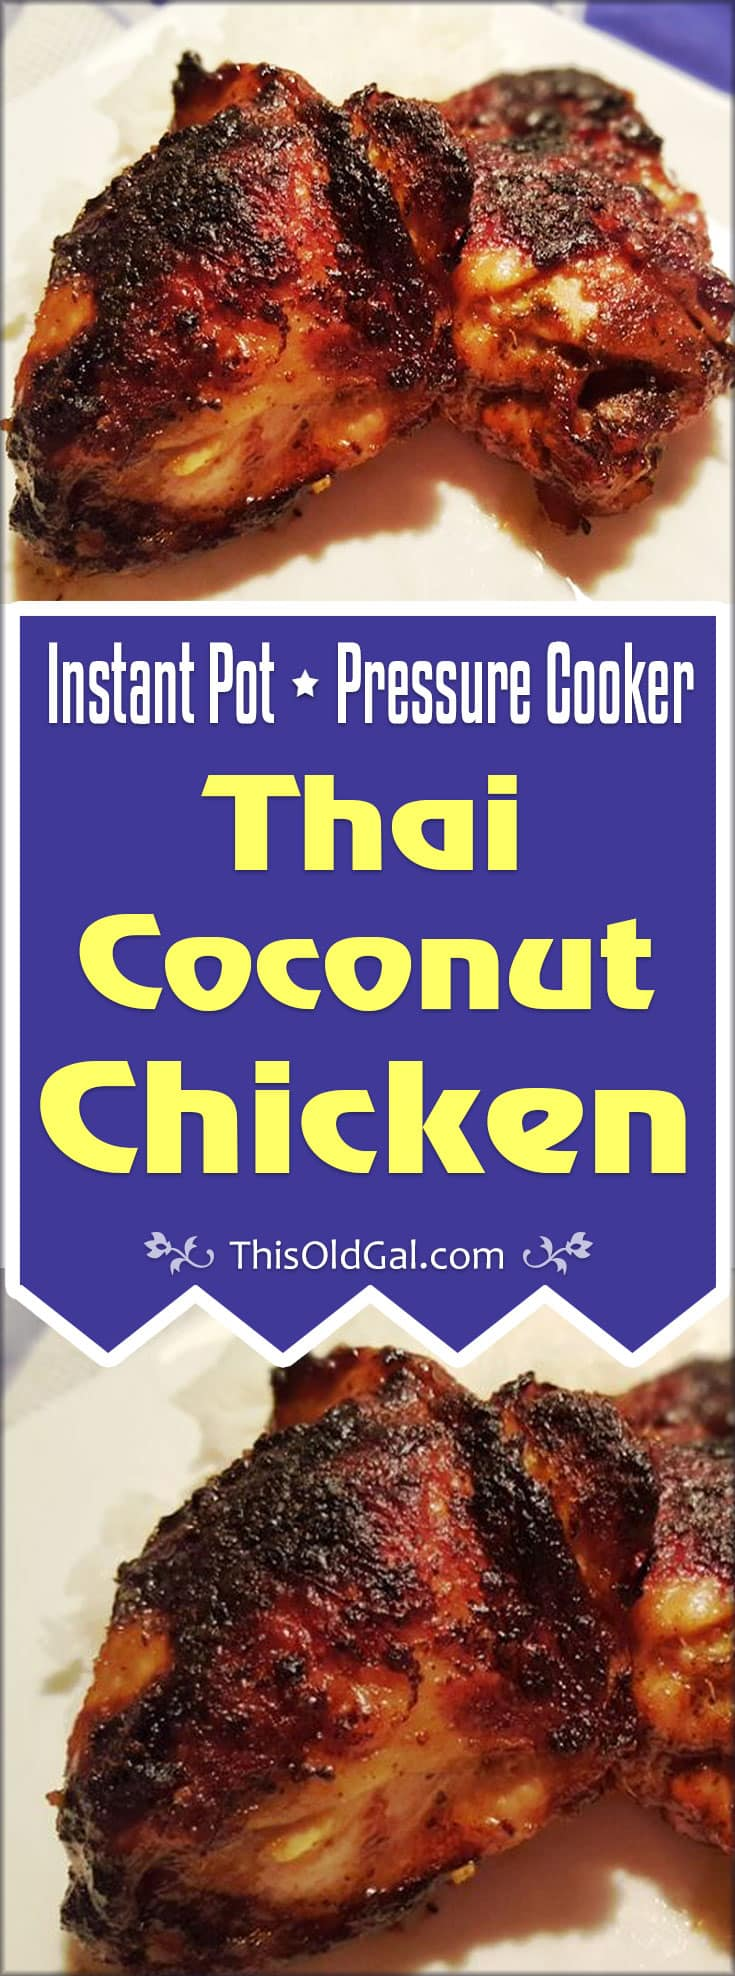 Pressure Cooker Thai Coconut Chicken (Instant Pot)